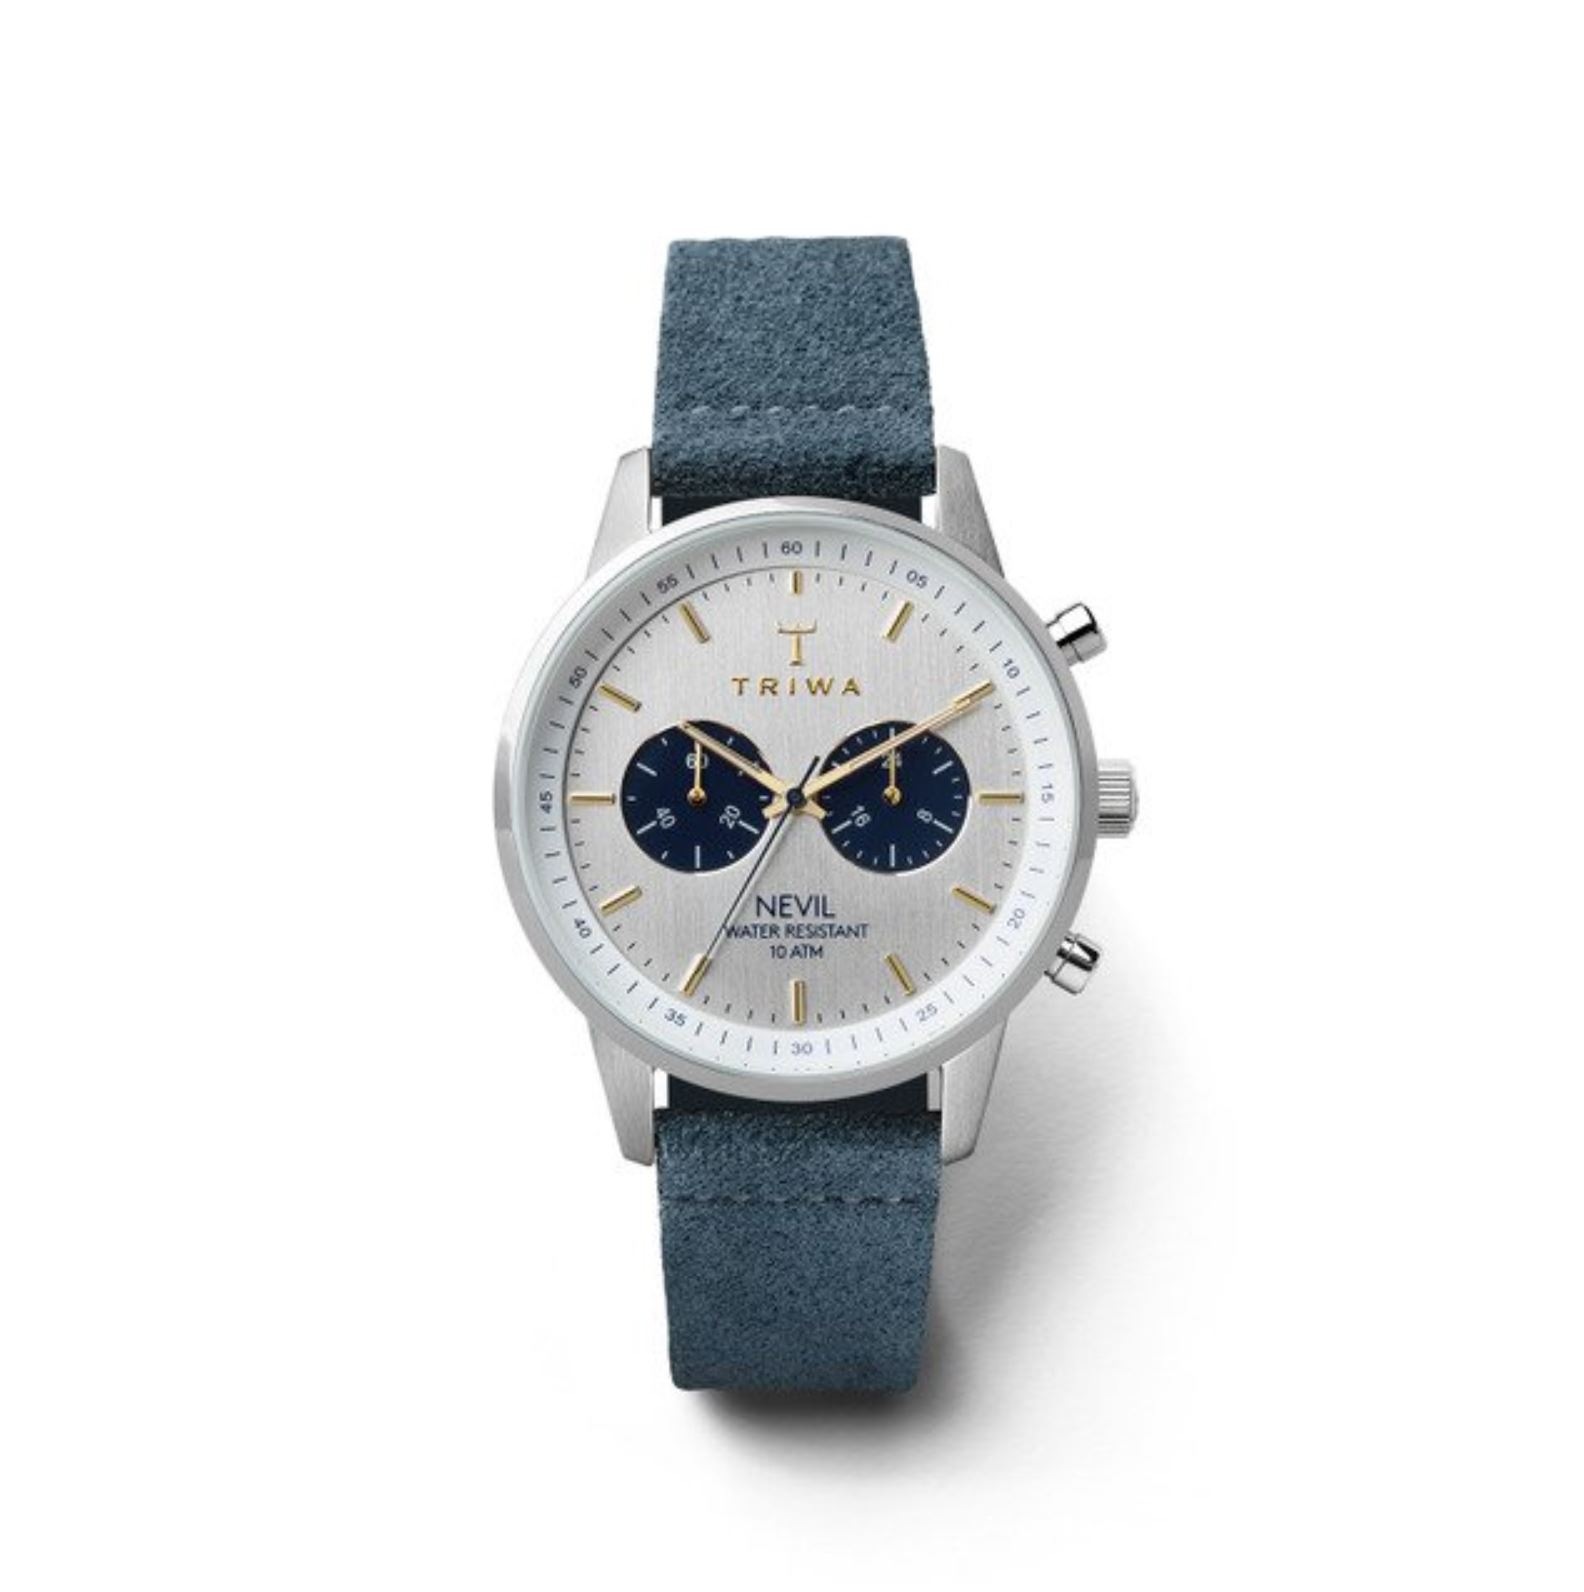 triwa oliver cabell watch collaboration